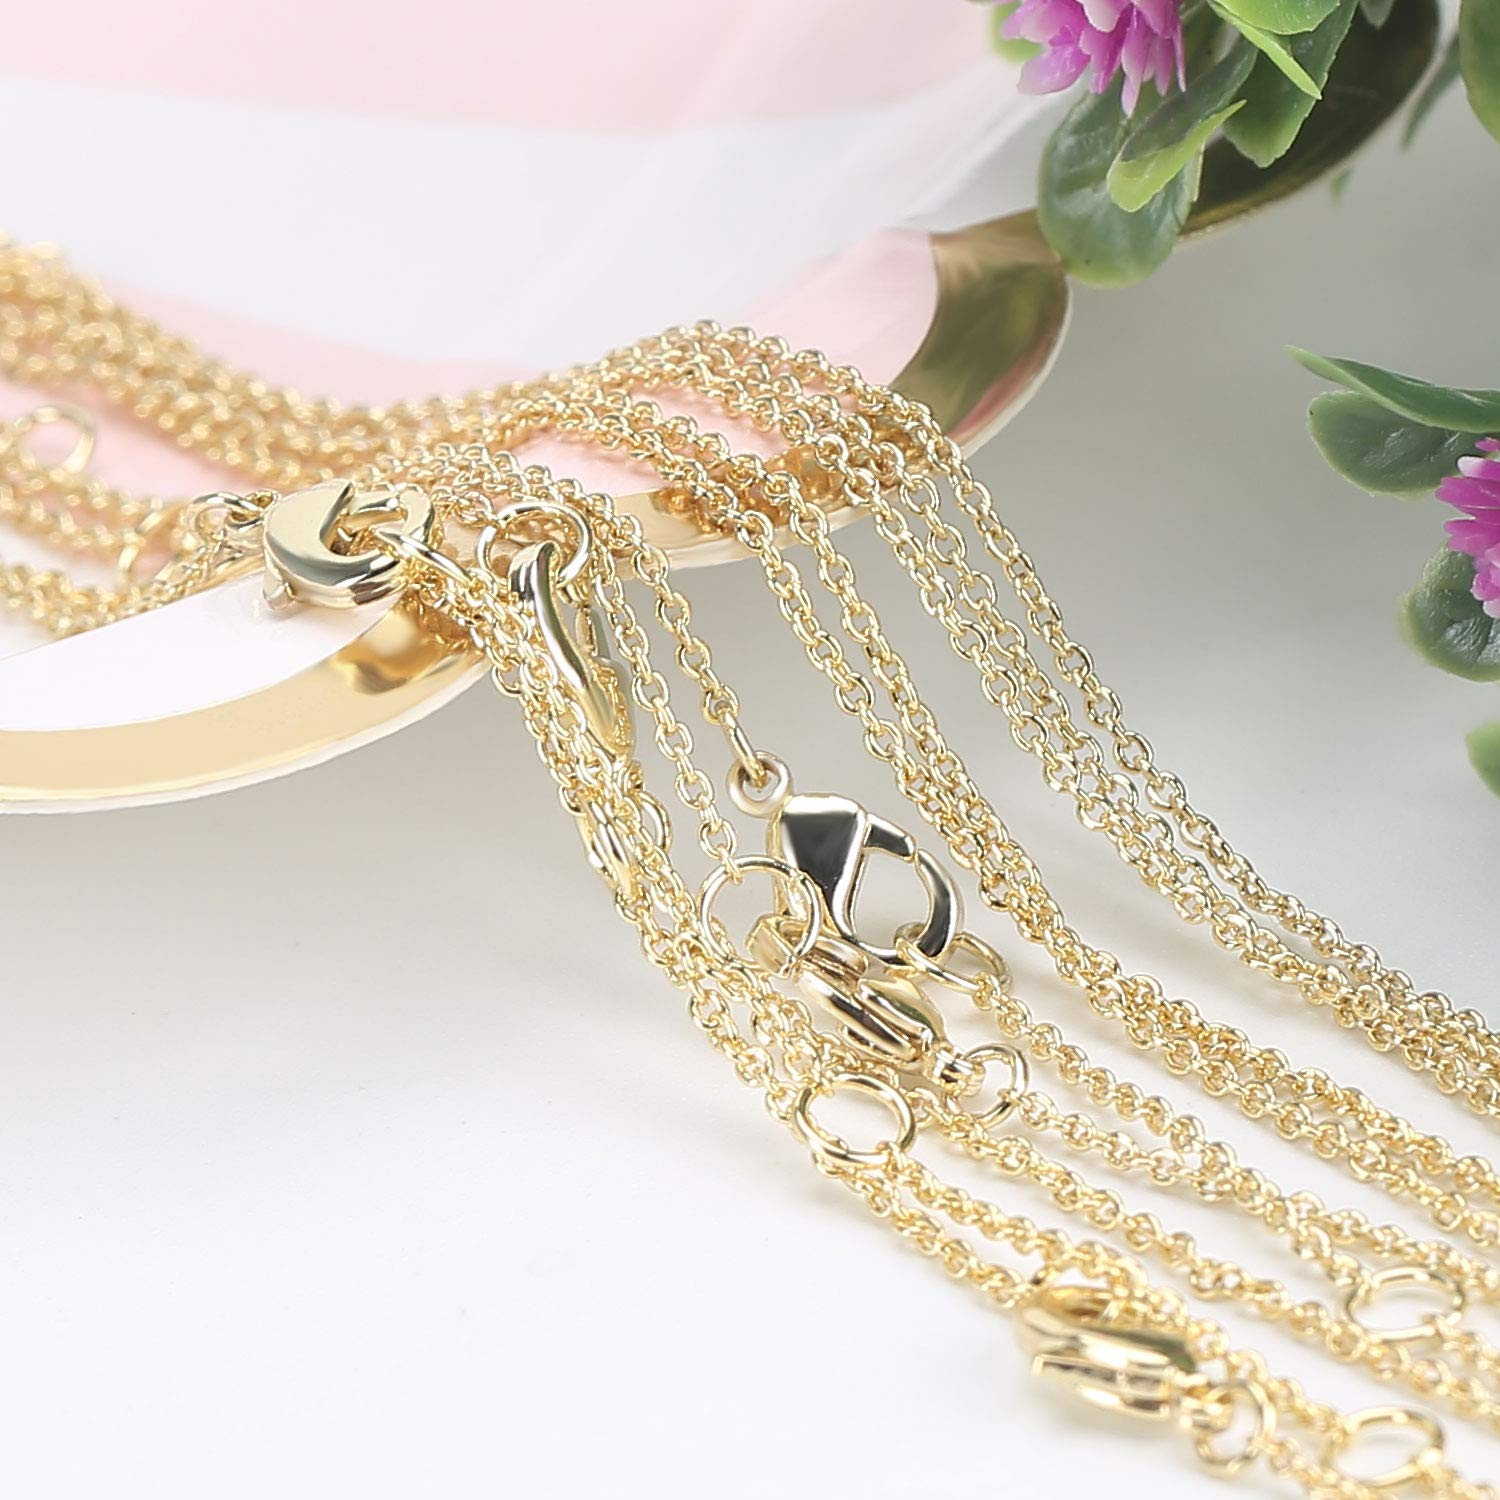 Wholesale 12 PCS 14K Real Gold Plated Solid Brass Thin O Chain Necklace 1 MM Finished Chain Bulk for Jewelry Making by SPUNKYCHARMS (Image #1)